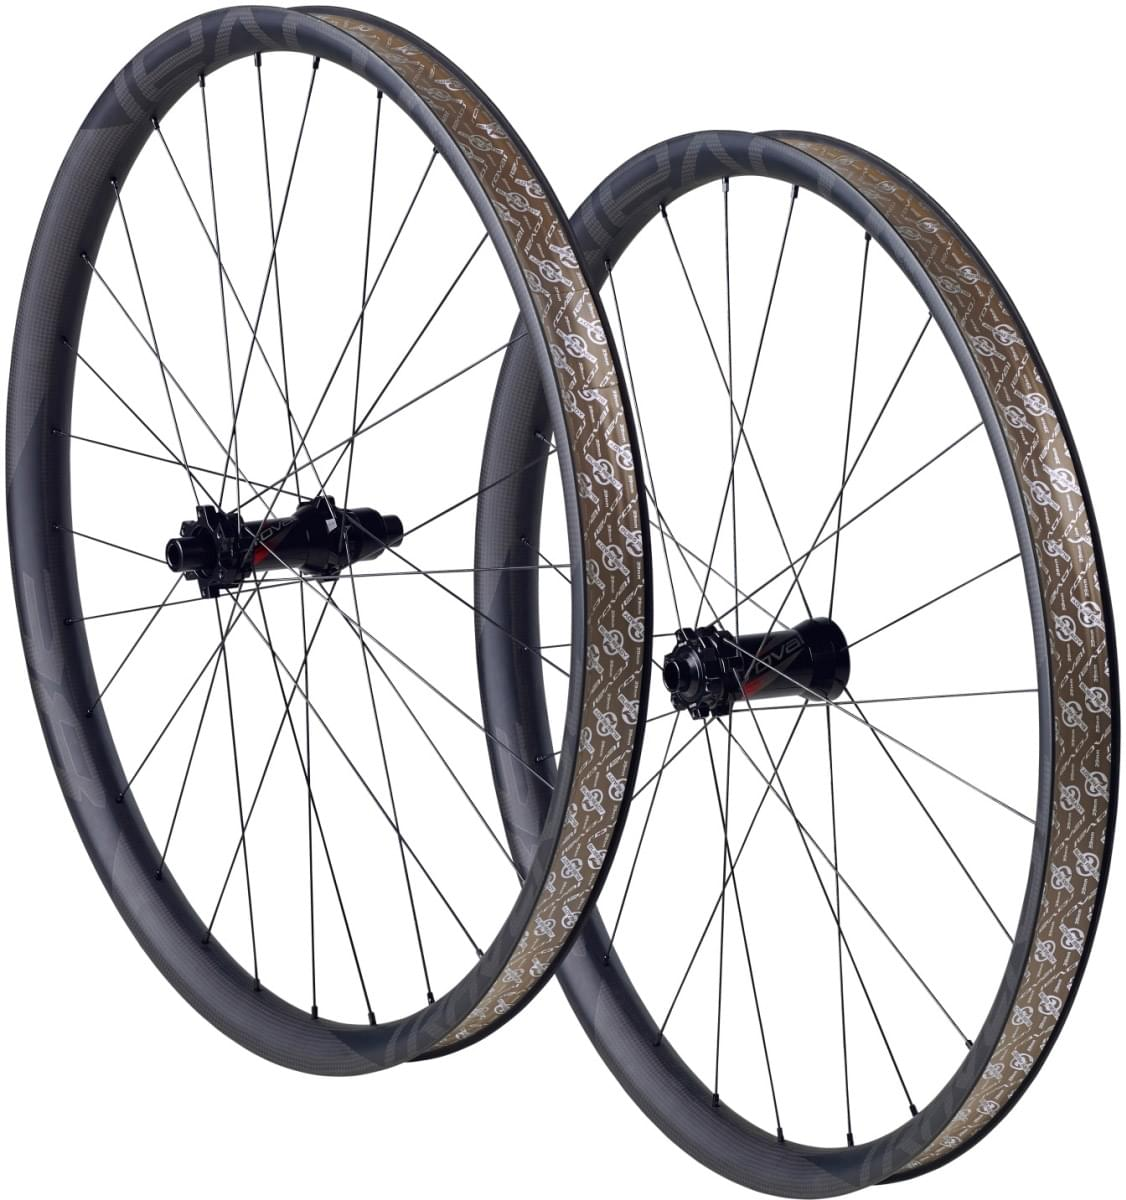 Specialized Roval Traverse SL 650B 148 Wheelset - carbon/black decal uni